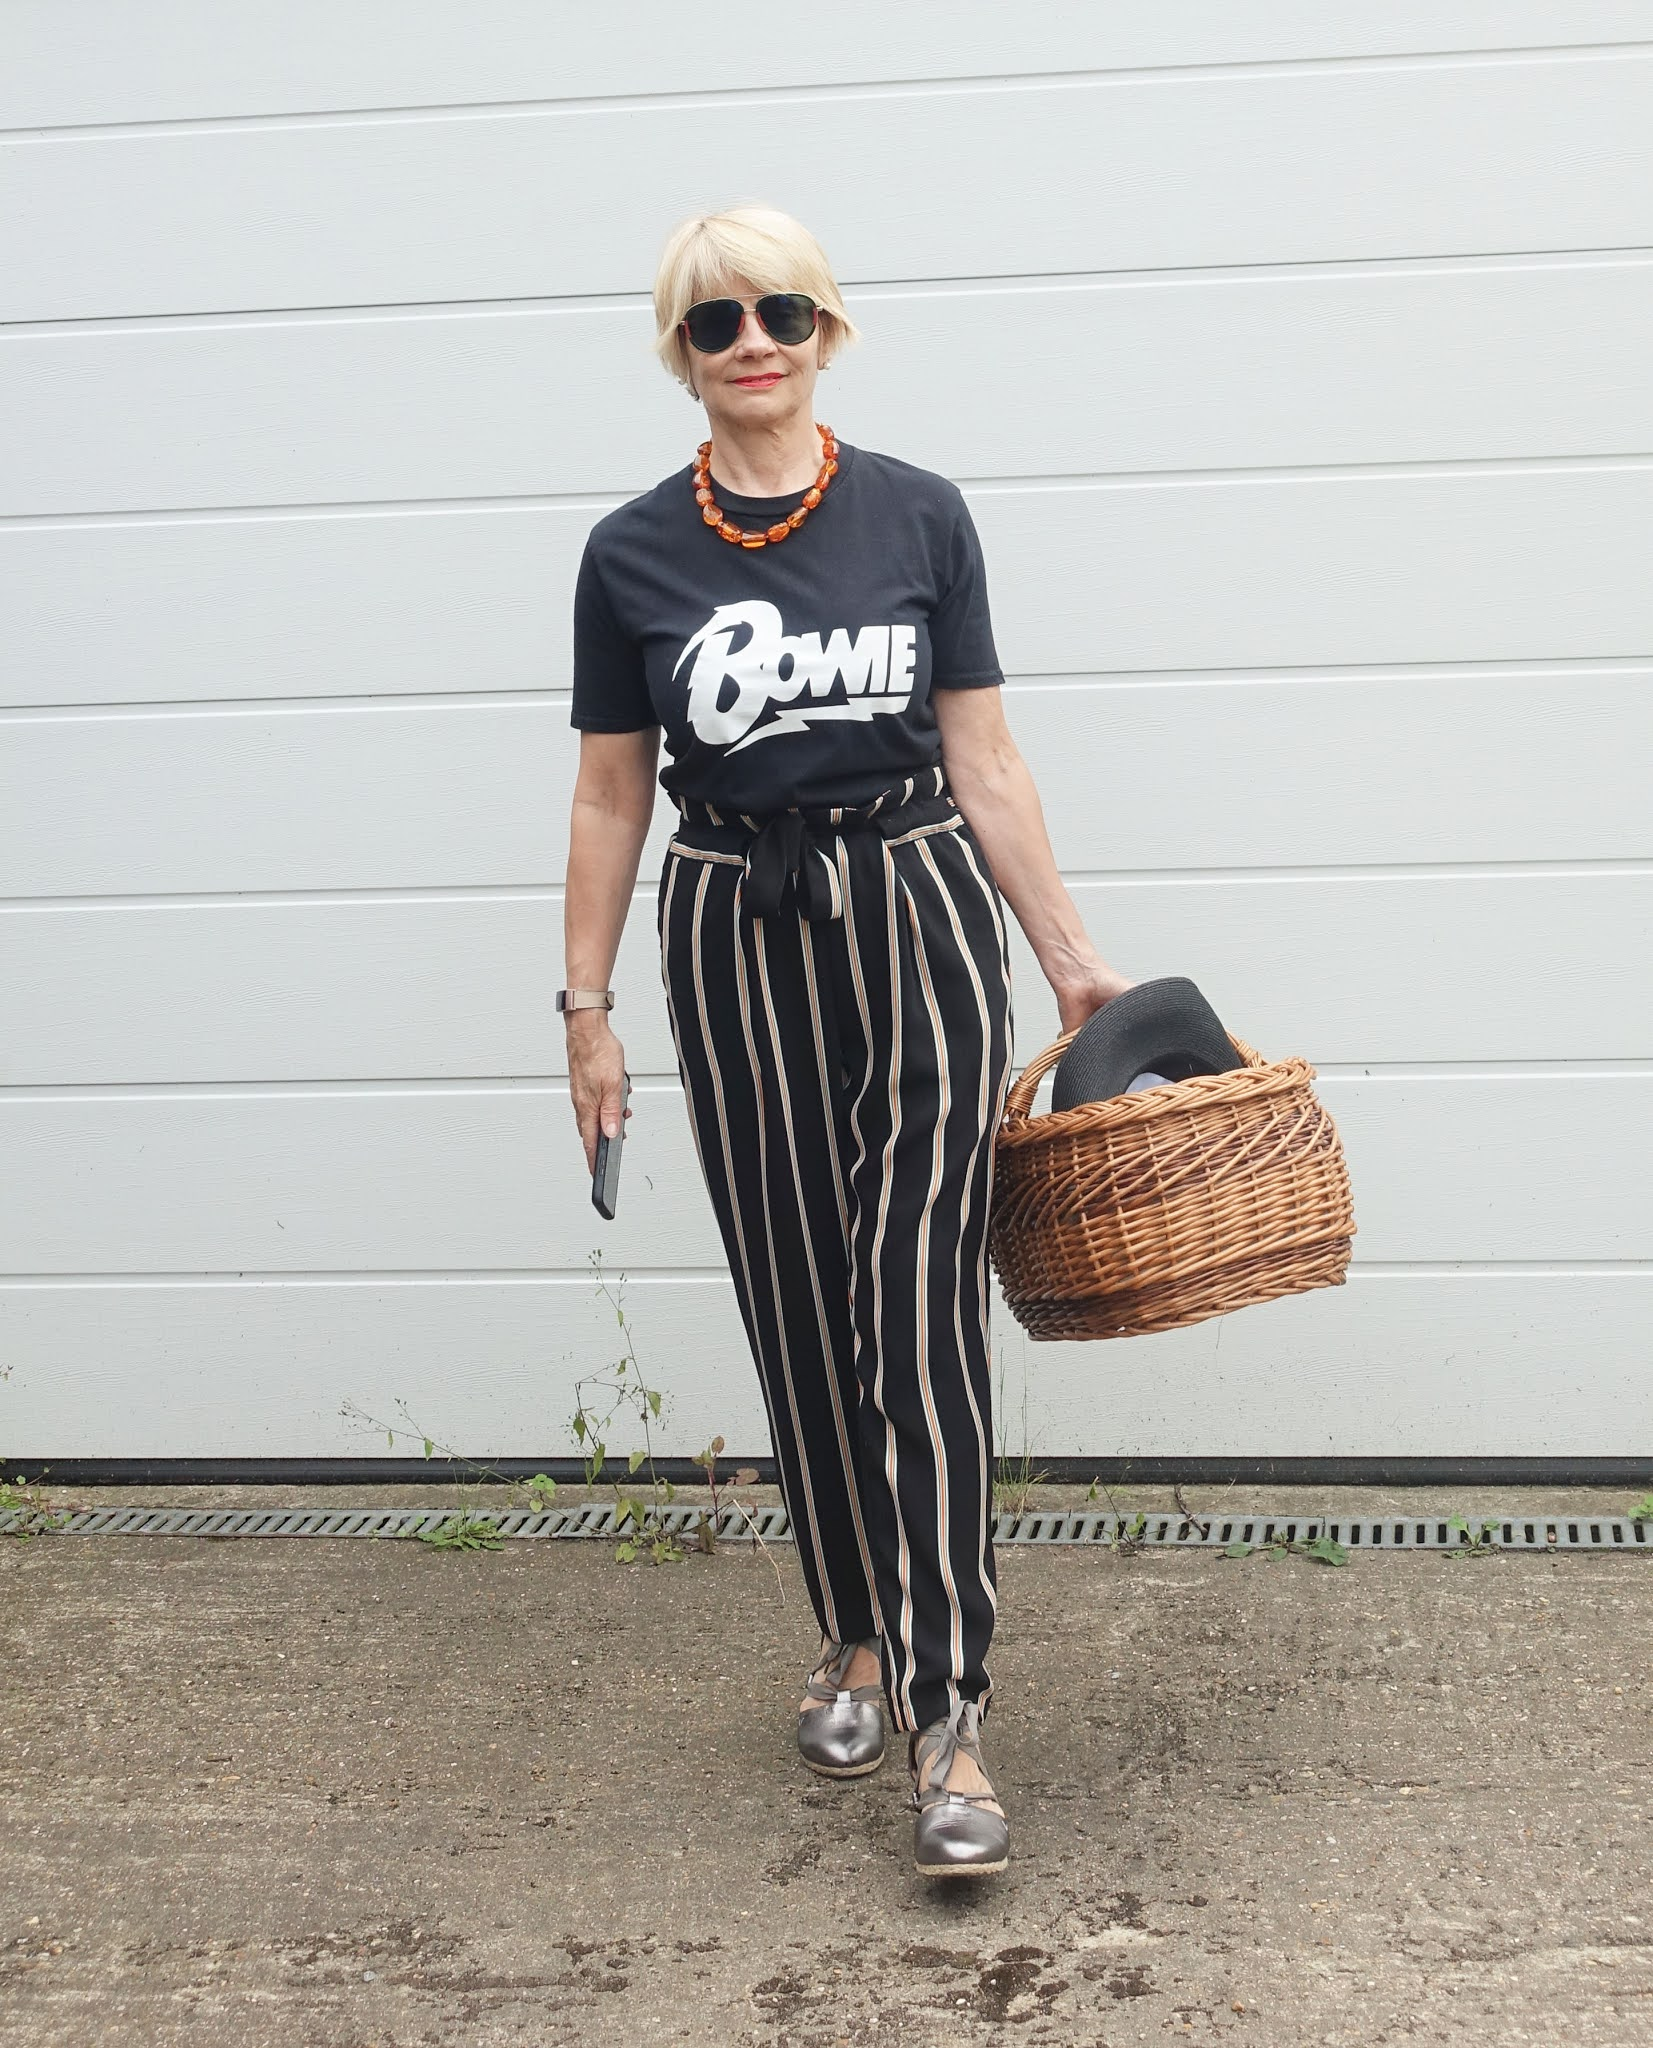 Is This Mutton blogger Gail Hanlon in casual attire for a picnic:  Bowie t-shirt, striped paperbag trousers, gunmetal wedges and Gucci sunglasses